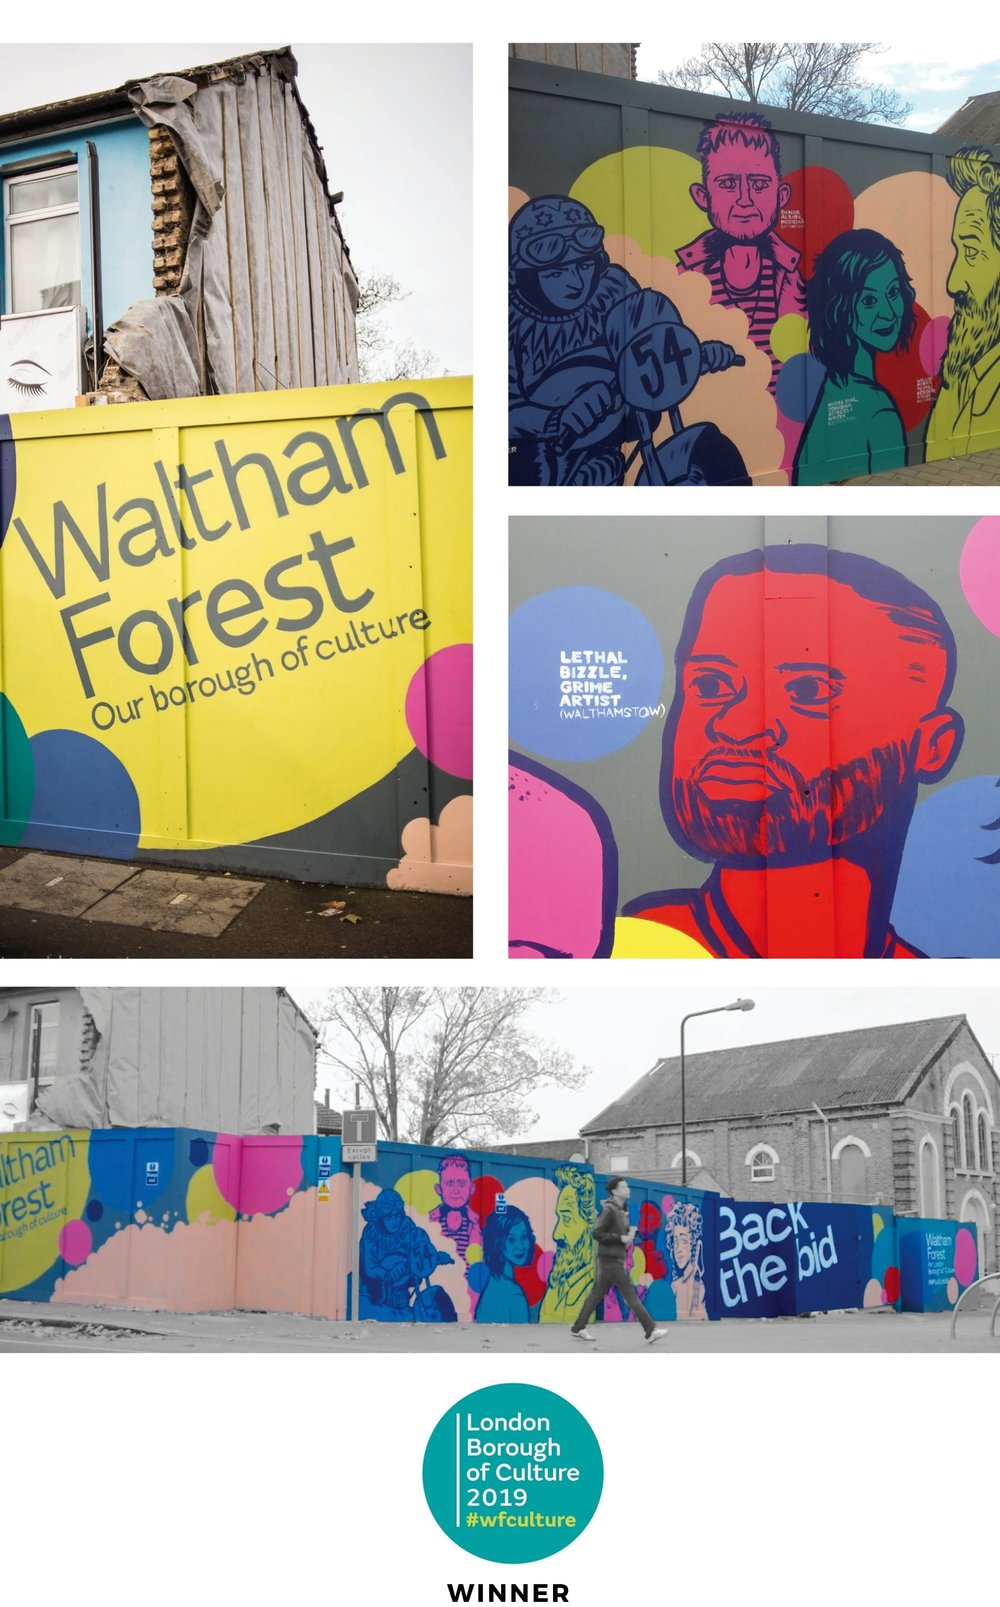 Client: Wood Street Walls/Waltham Forest Council